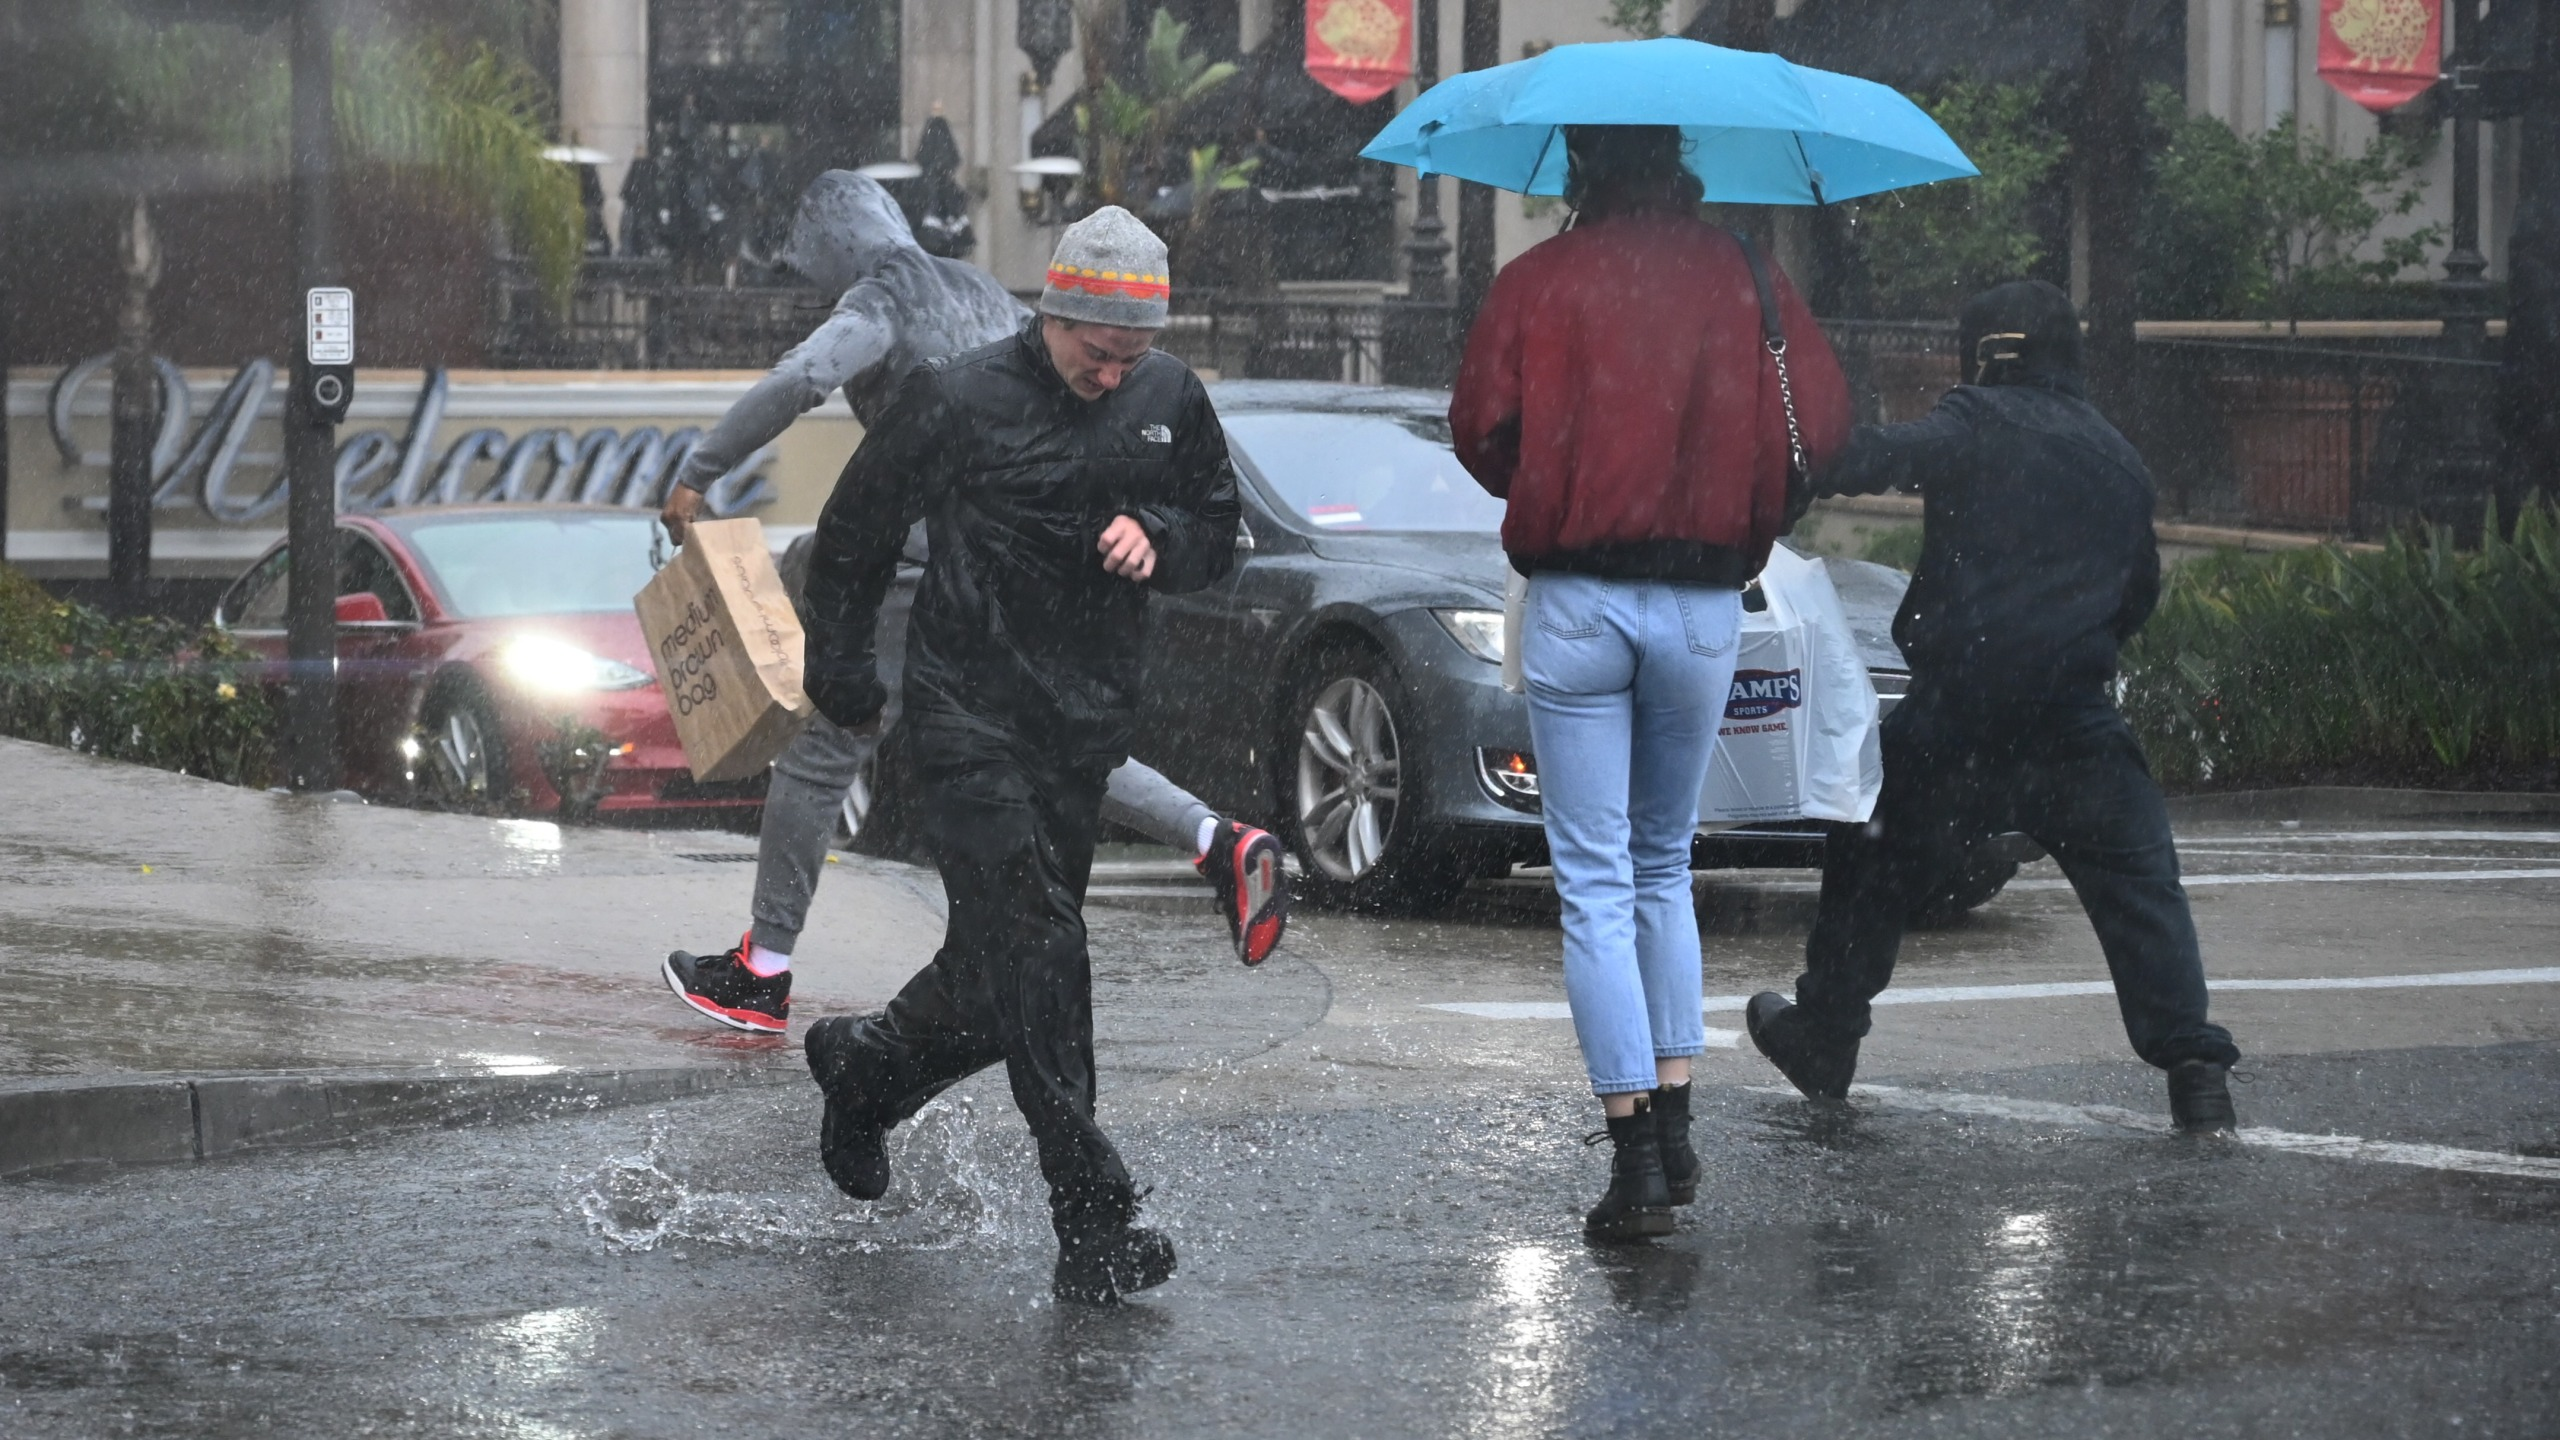 People run through water flooding a street in Glendale on Feb. 2, 2019. (Credit: ROBYN BECK/AFP/Getty Images)